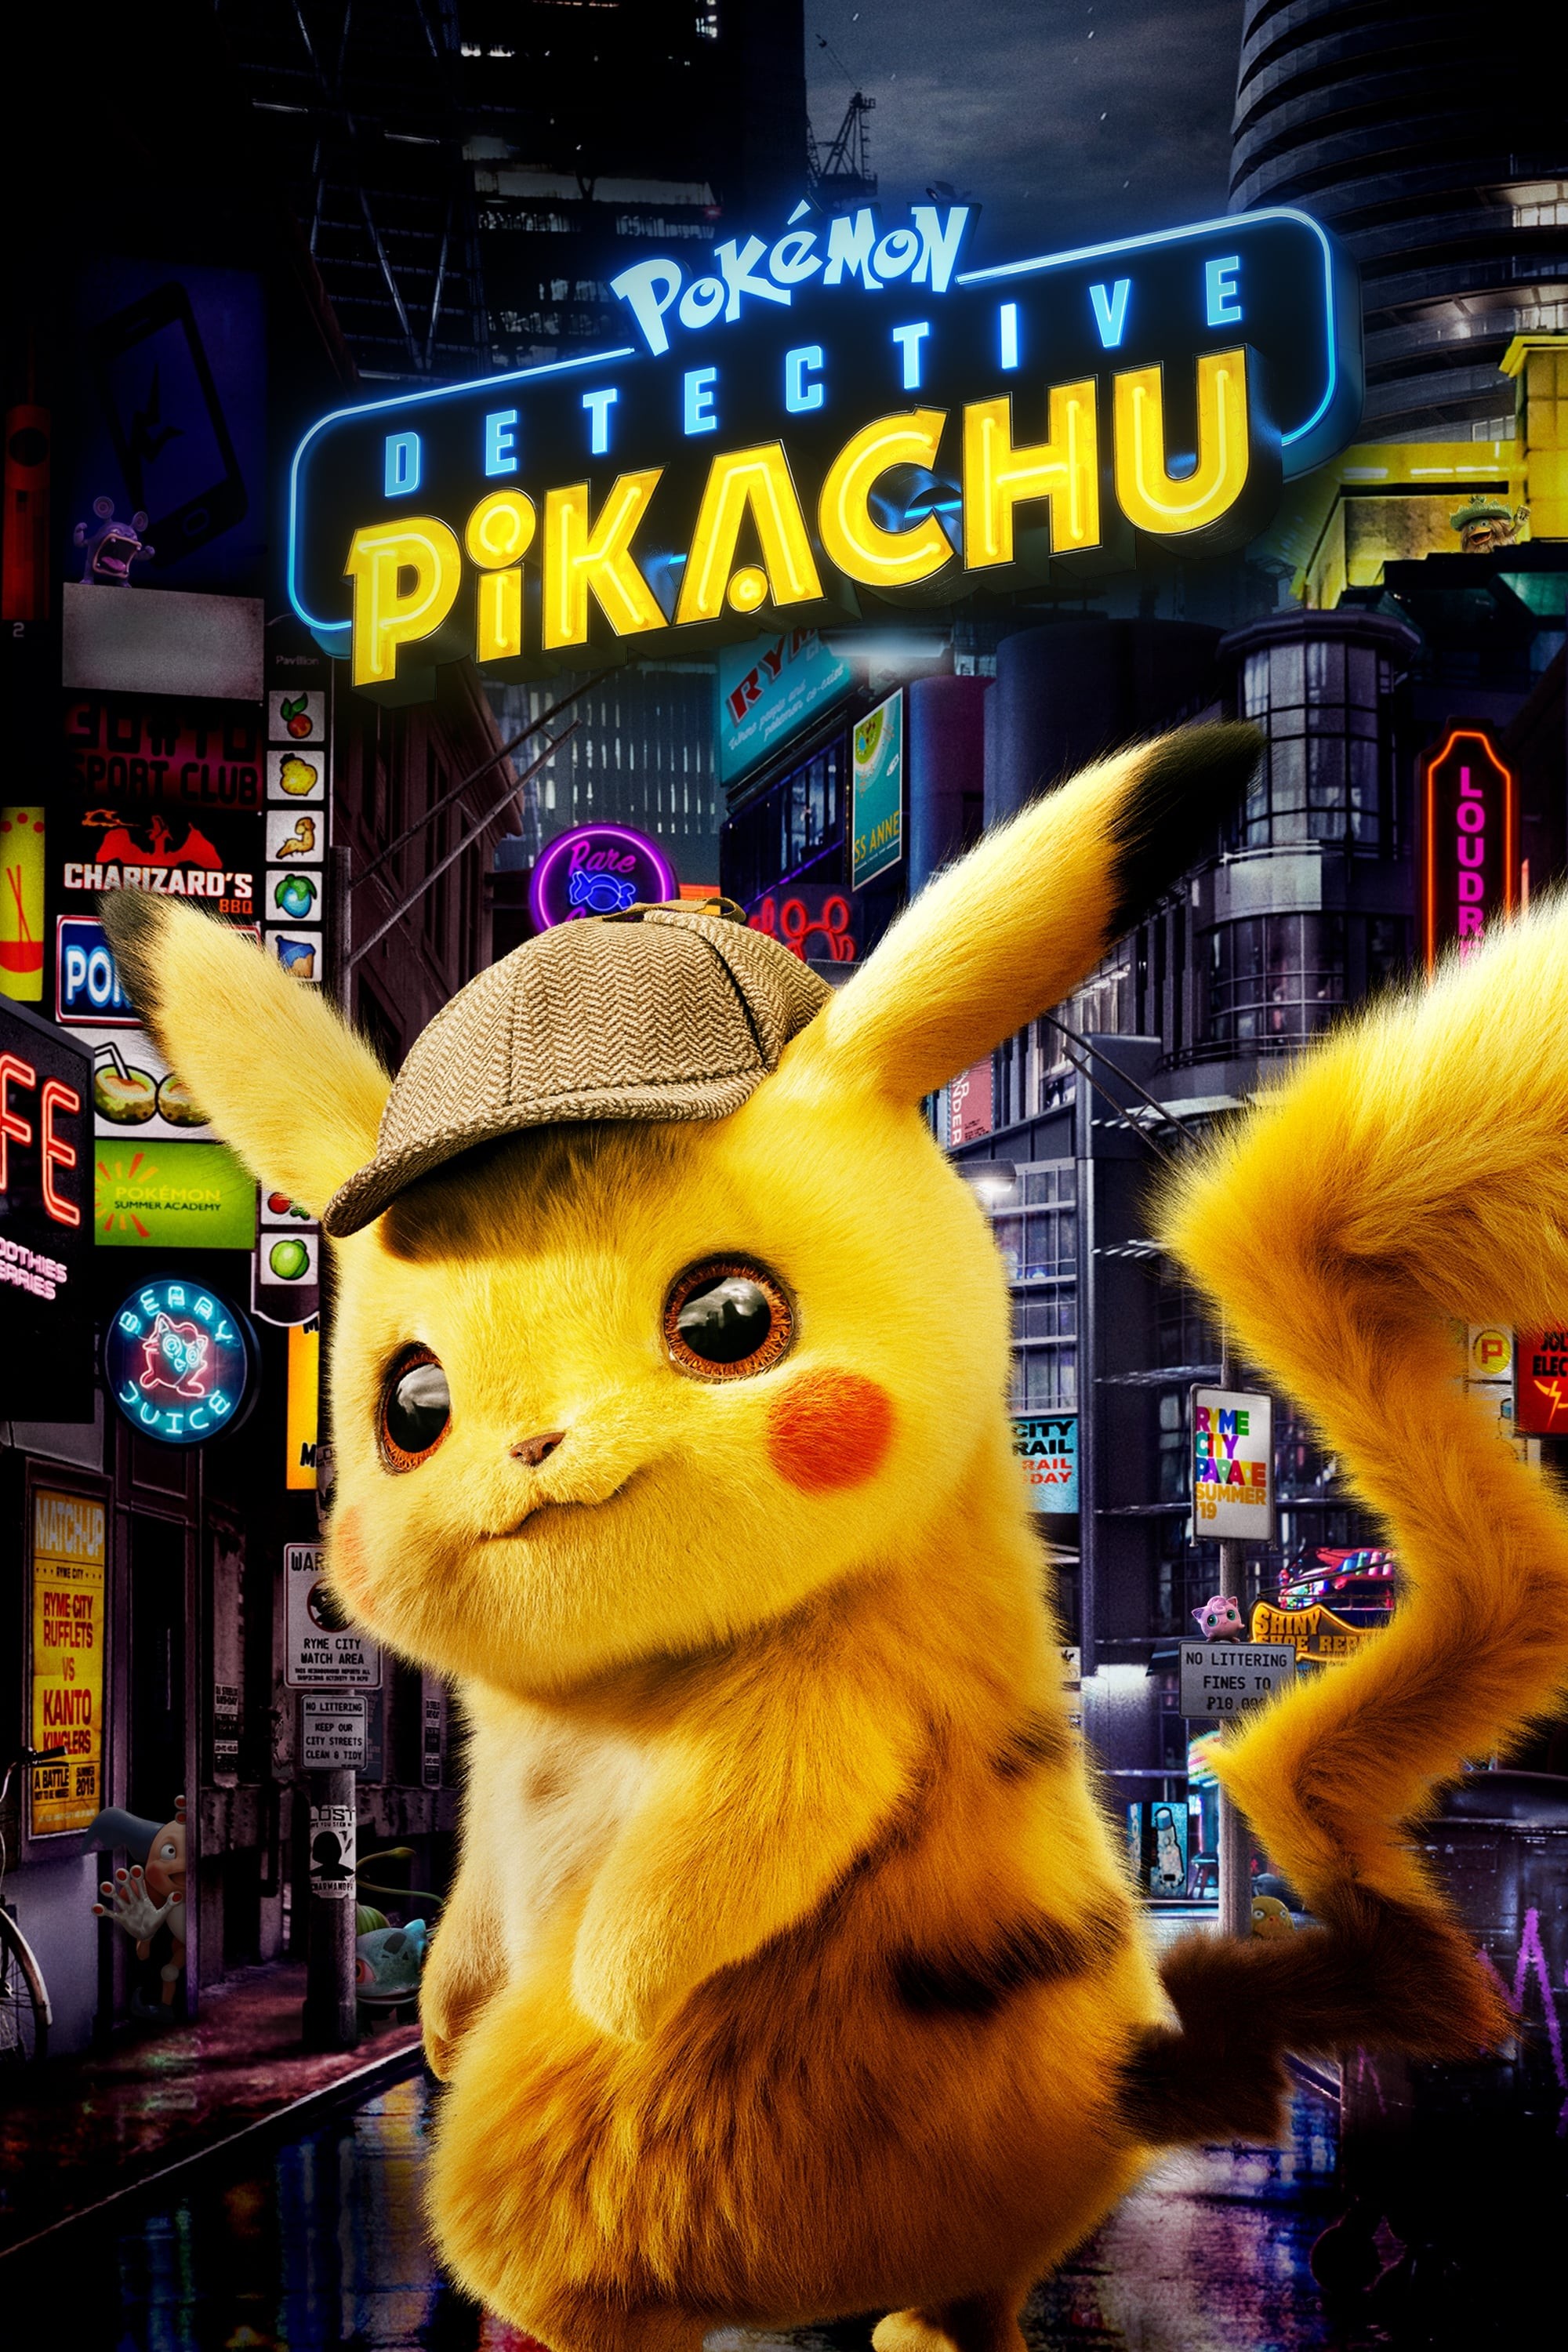 Watch Pokémon Detective Pikachu (2019) Full Movie Online Free - Watch Movies Online HD Quality